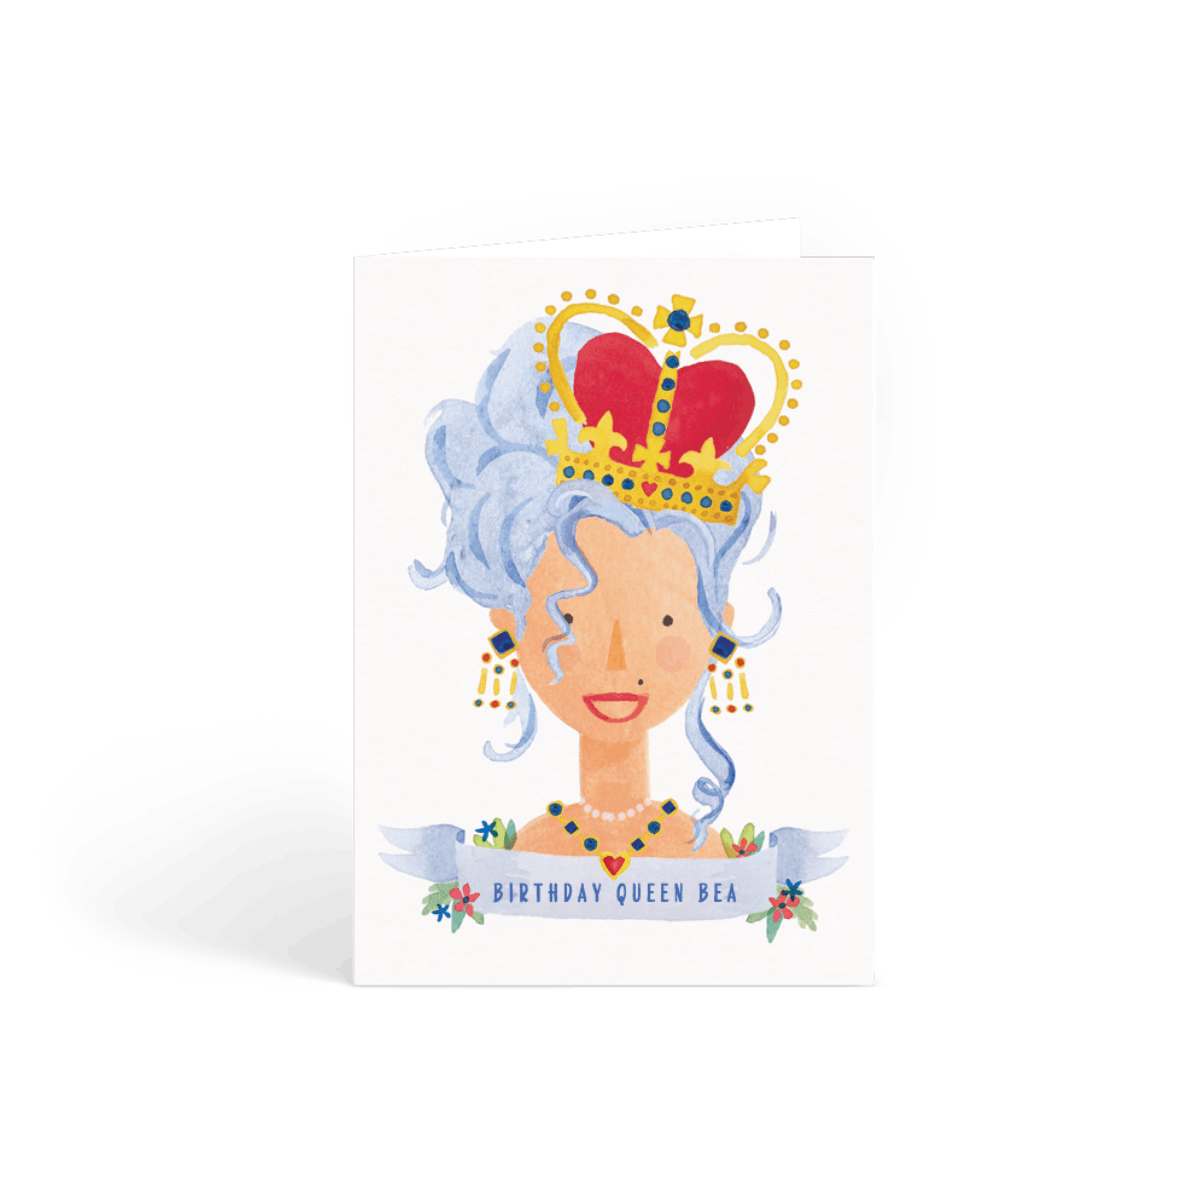 Https%3a%2f%2fwww.papier.com%2fproduct image%2f4456%2f2%2fbirthday queen 1166 front 1455805229.png?ixlib=rb 1.1